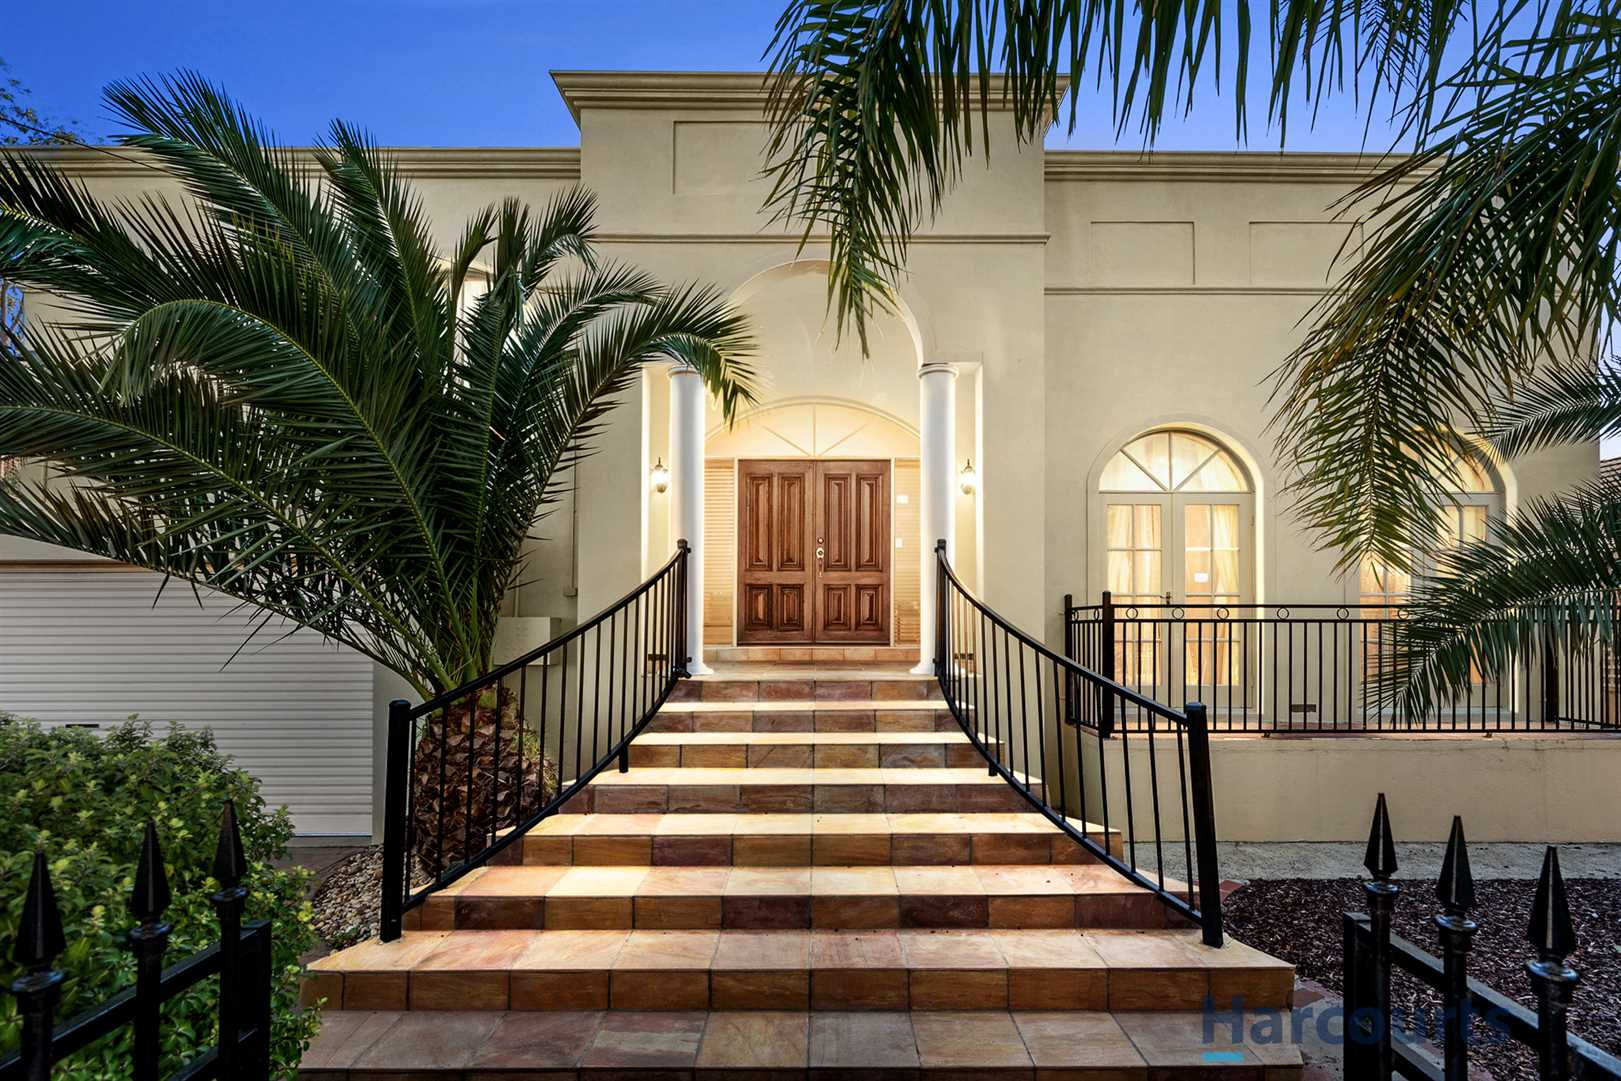 Spectacular Home In The MWSC Catchment